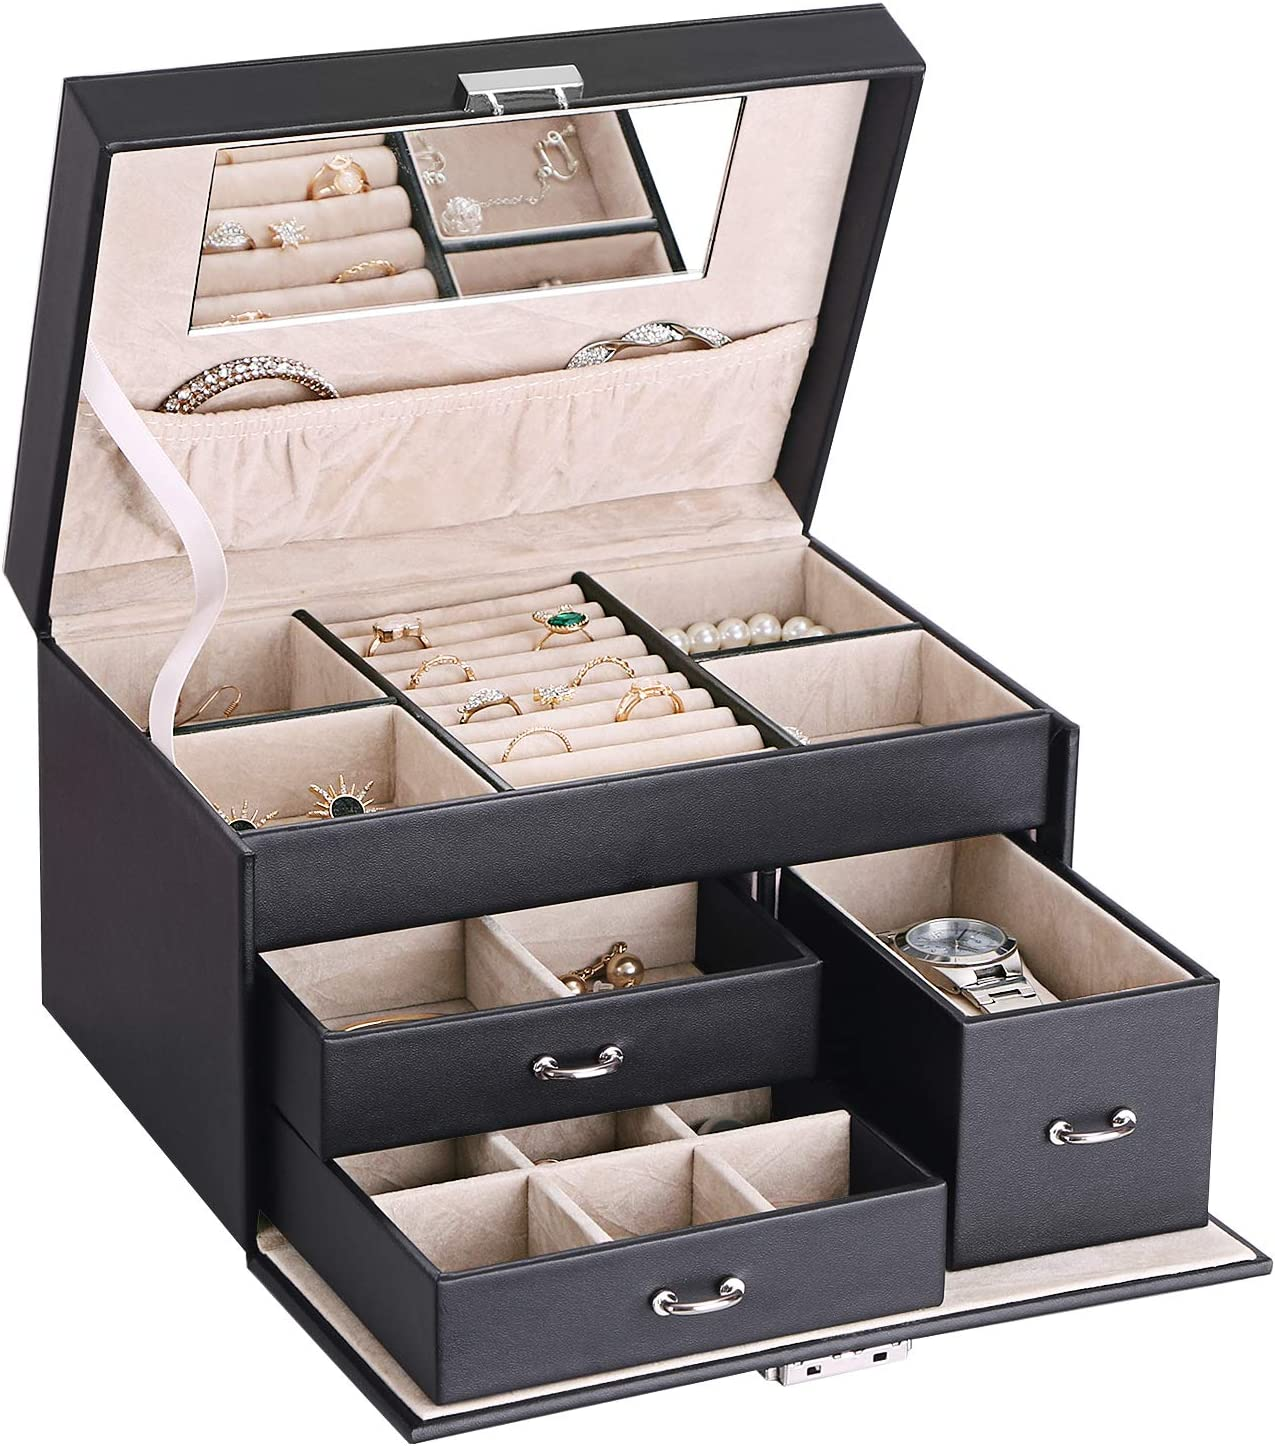 Amazon Com Bewishome 20 Section Jewelry Organizer Box With Lock Portable Jewelry Storage Case For Women Girls Earring Ring Necklace Holder Travel Case Black Faux Leather Ssh78b Home Improvement